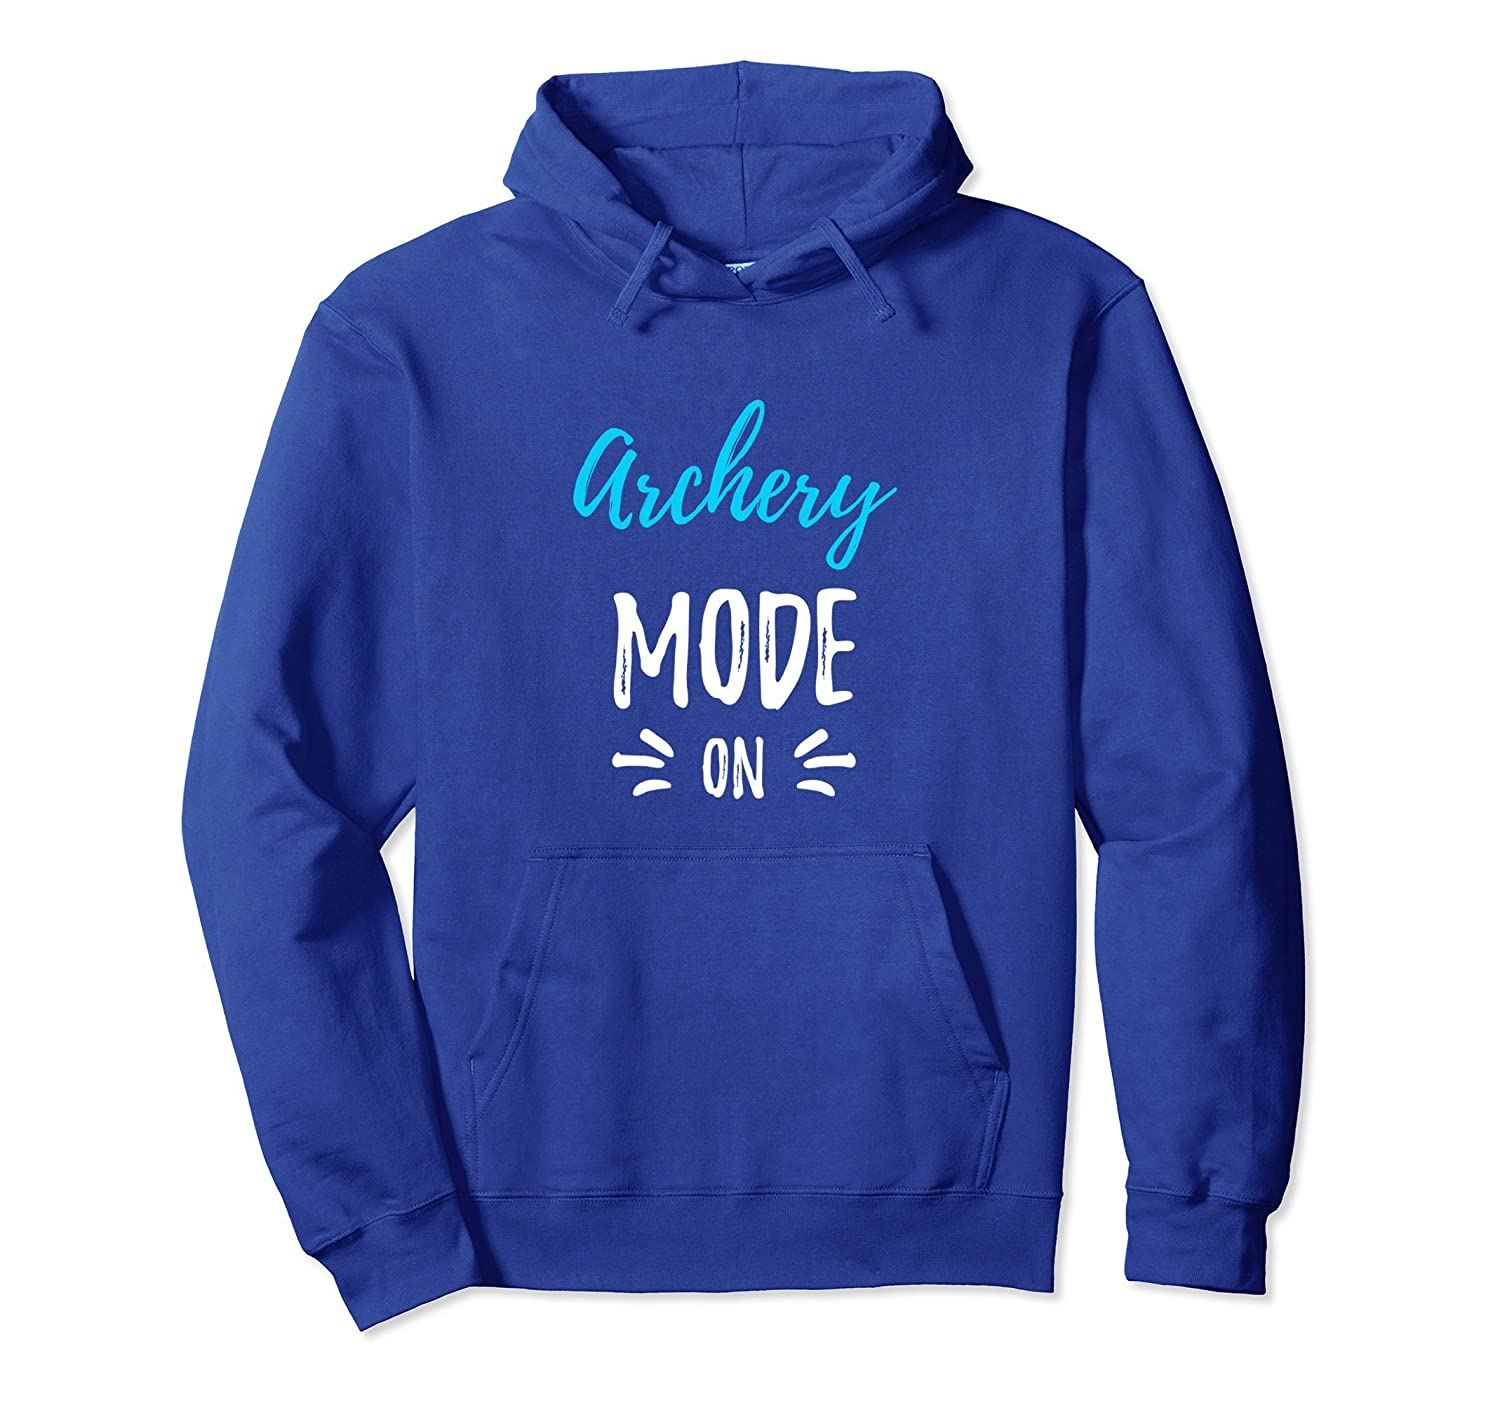 Archery Hoodie - Archery Mode On-ah my shirt one gift